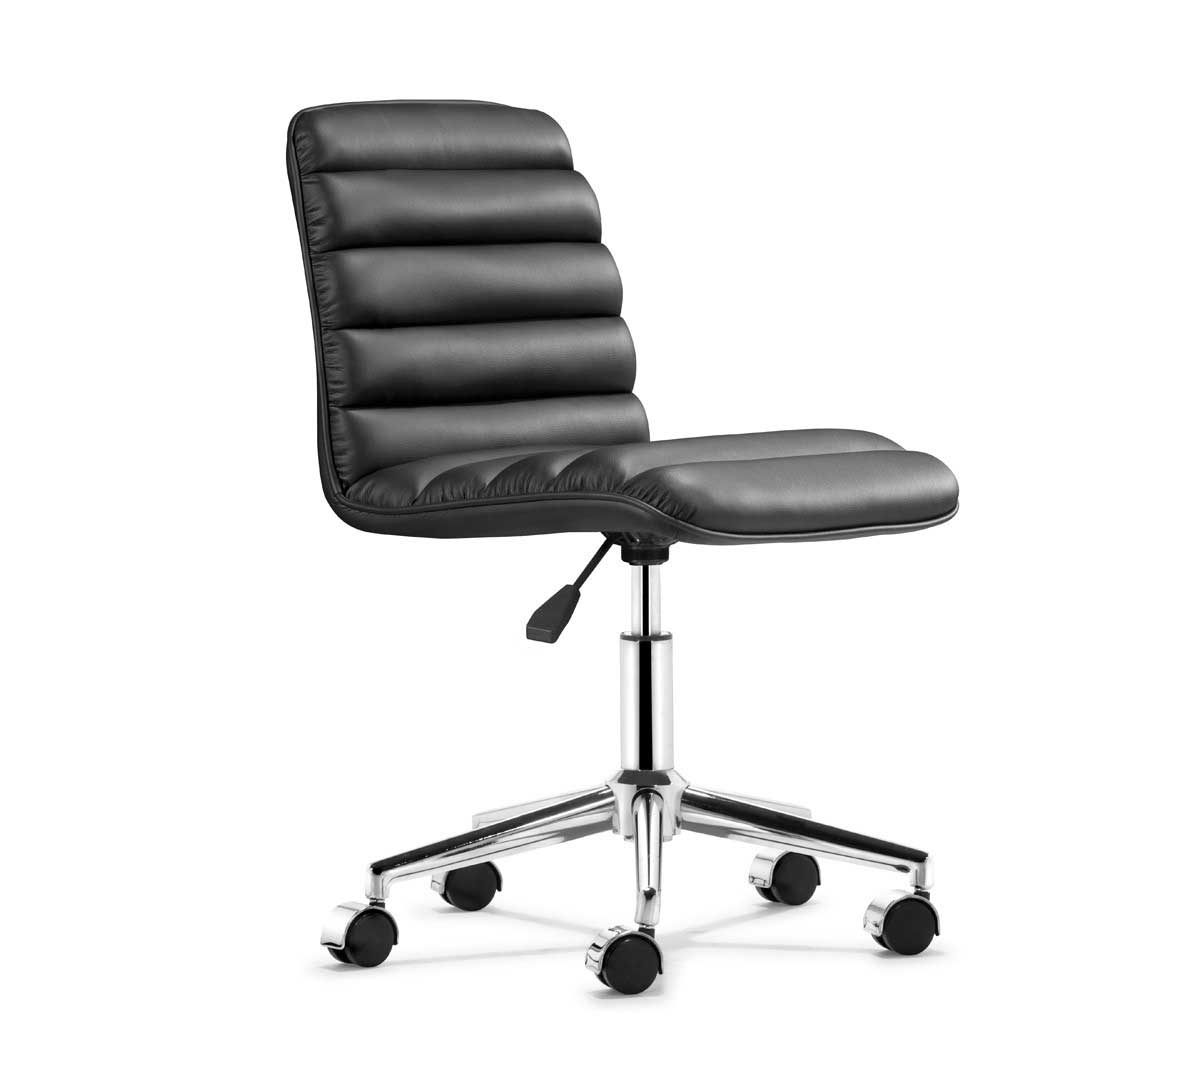 desk chair adjustable pier one bistro table and chairs height to increase productivity